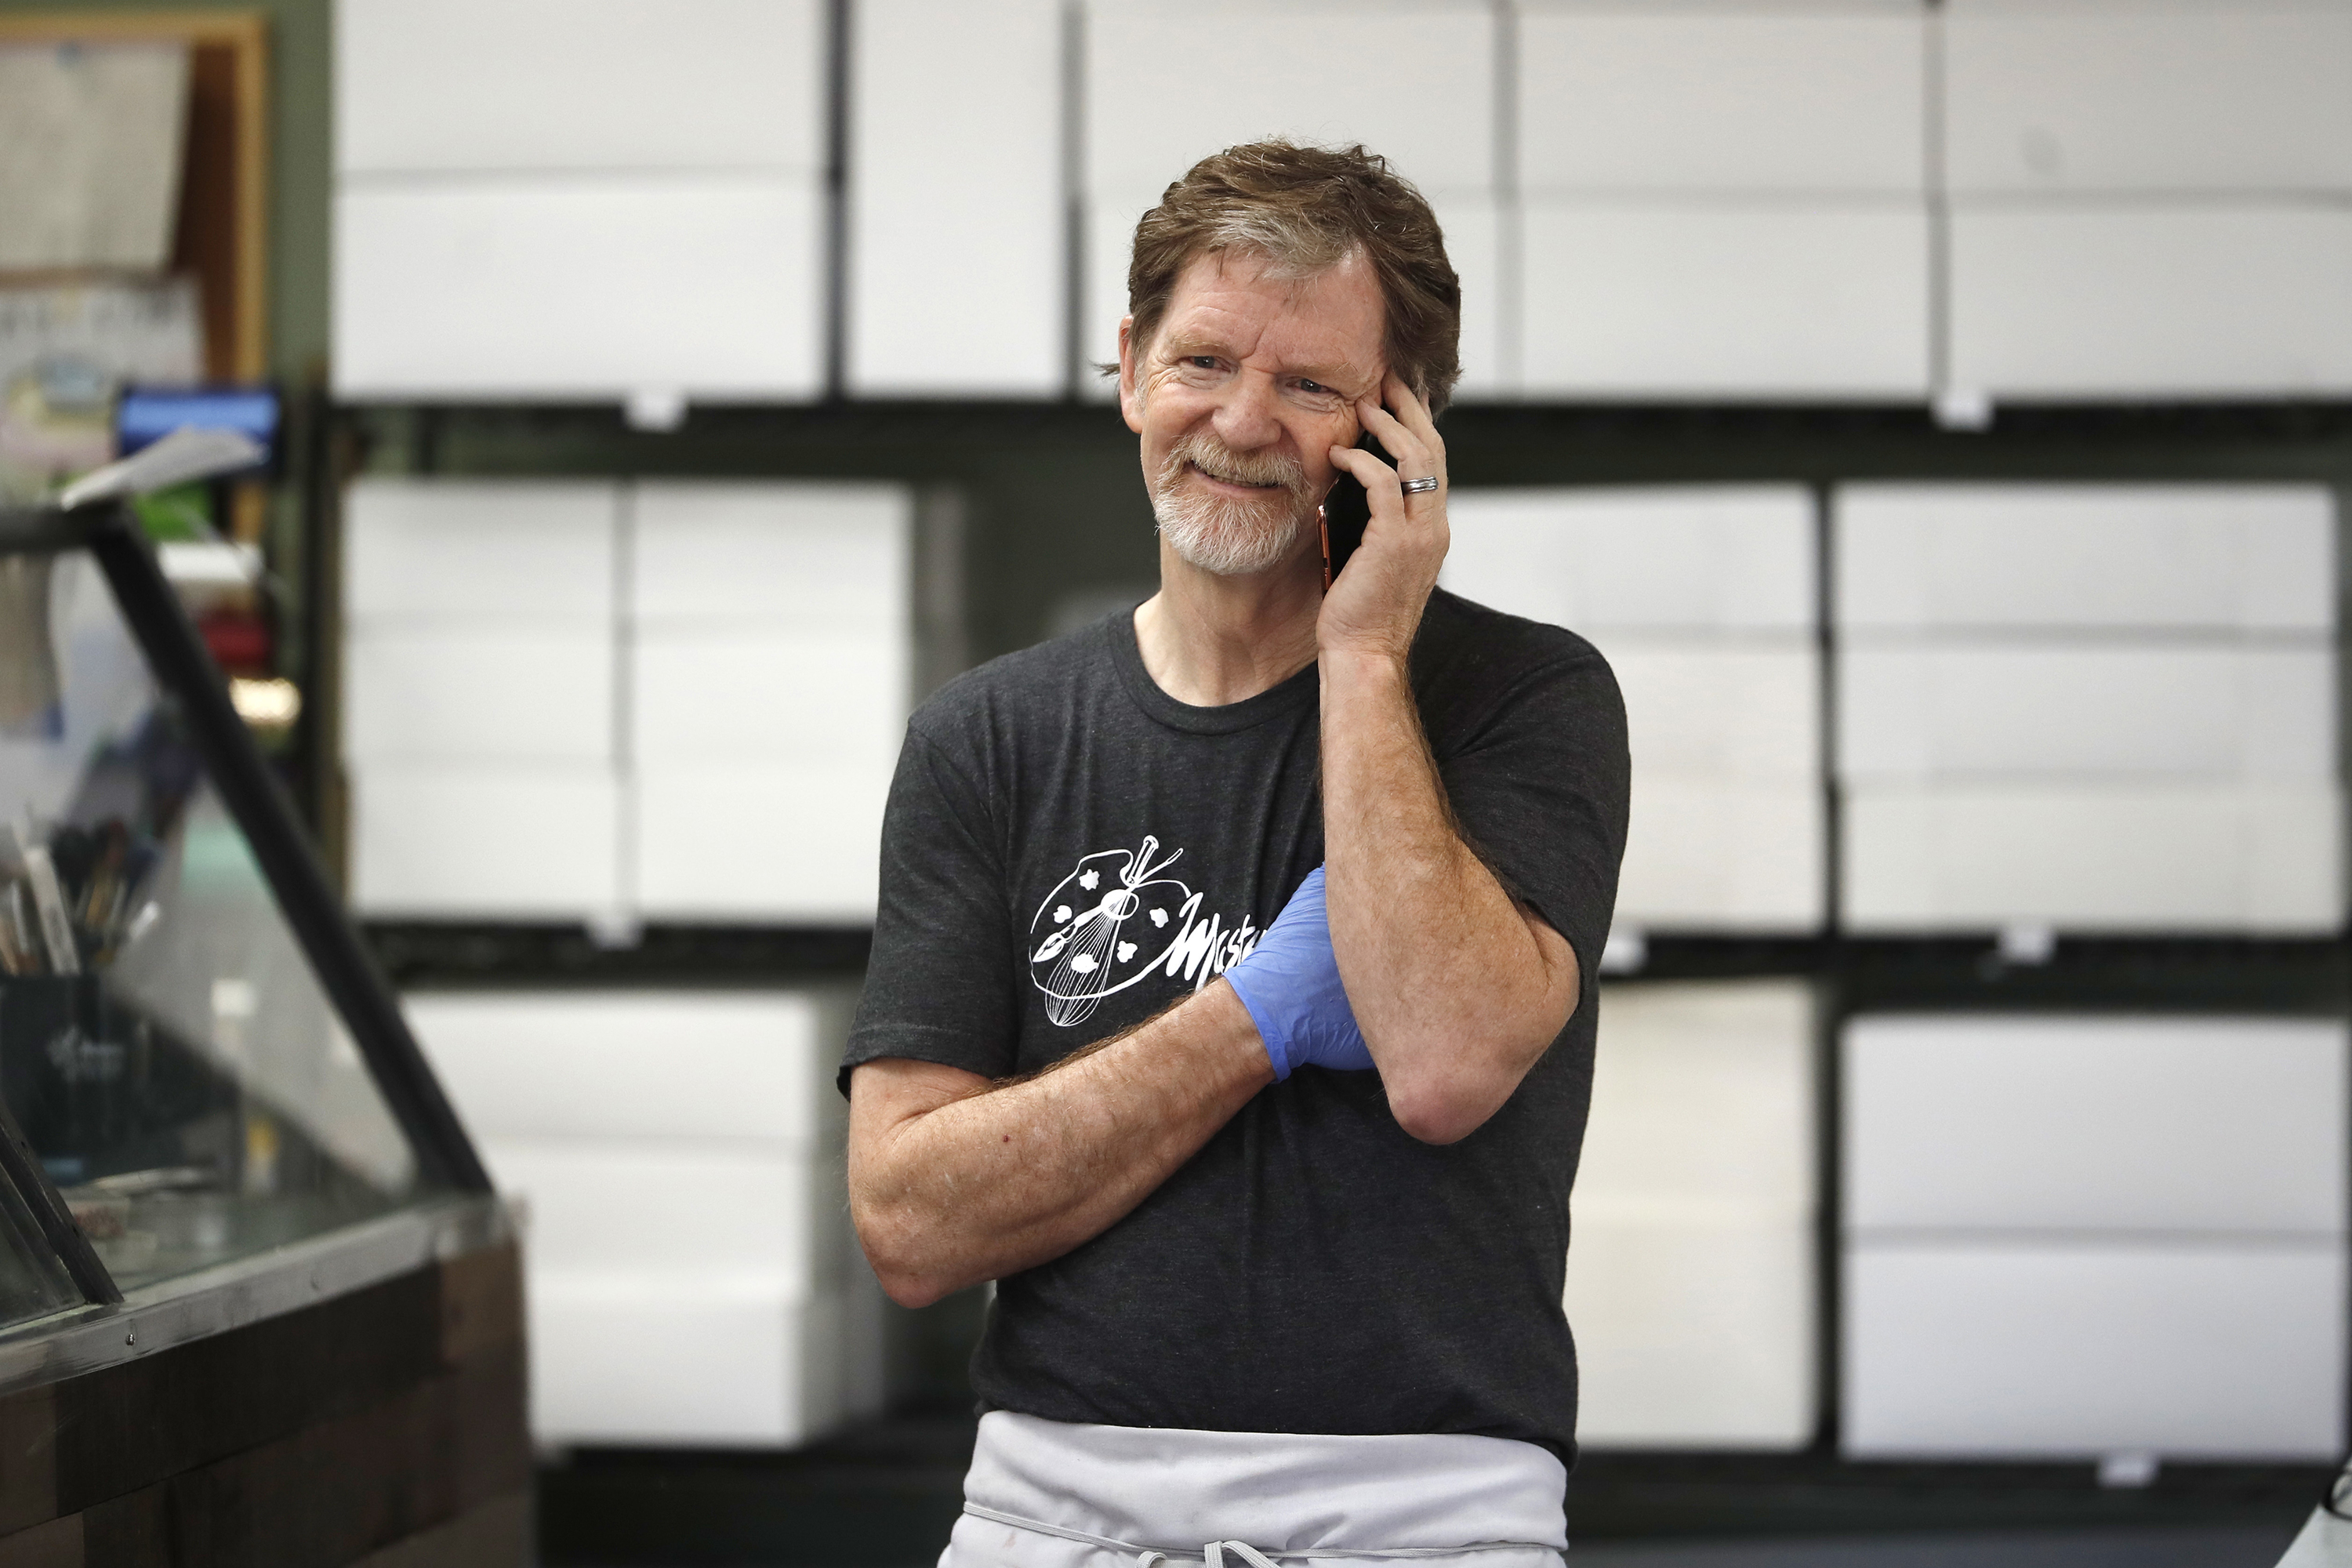 Photo: Masterpiece Jack Phillips On Phone AP (6-4-18)